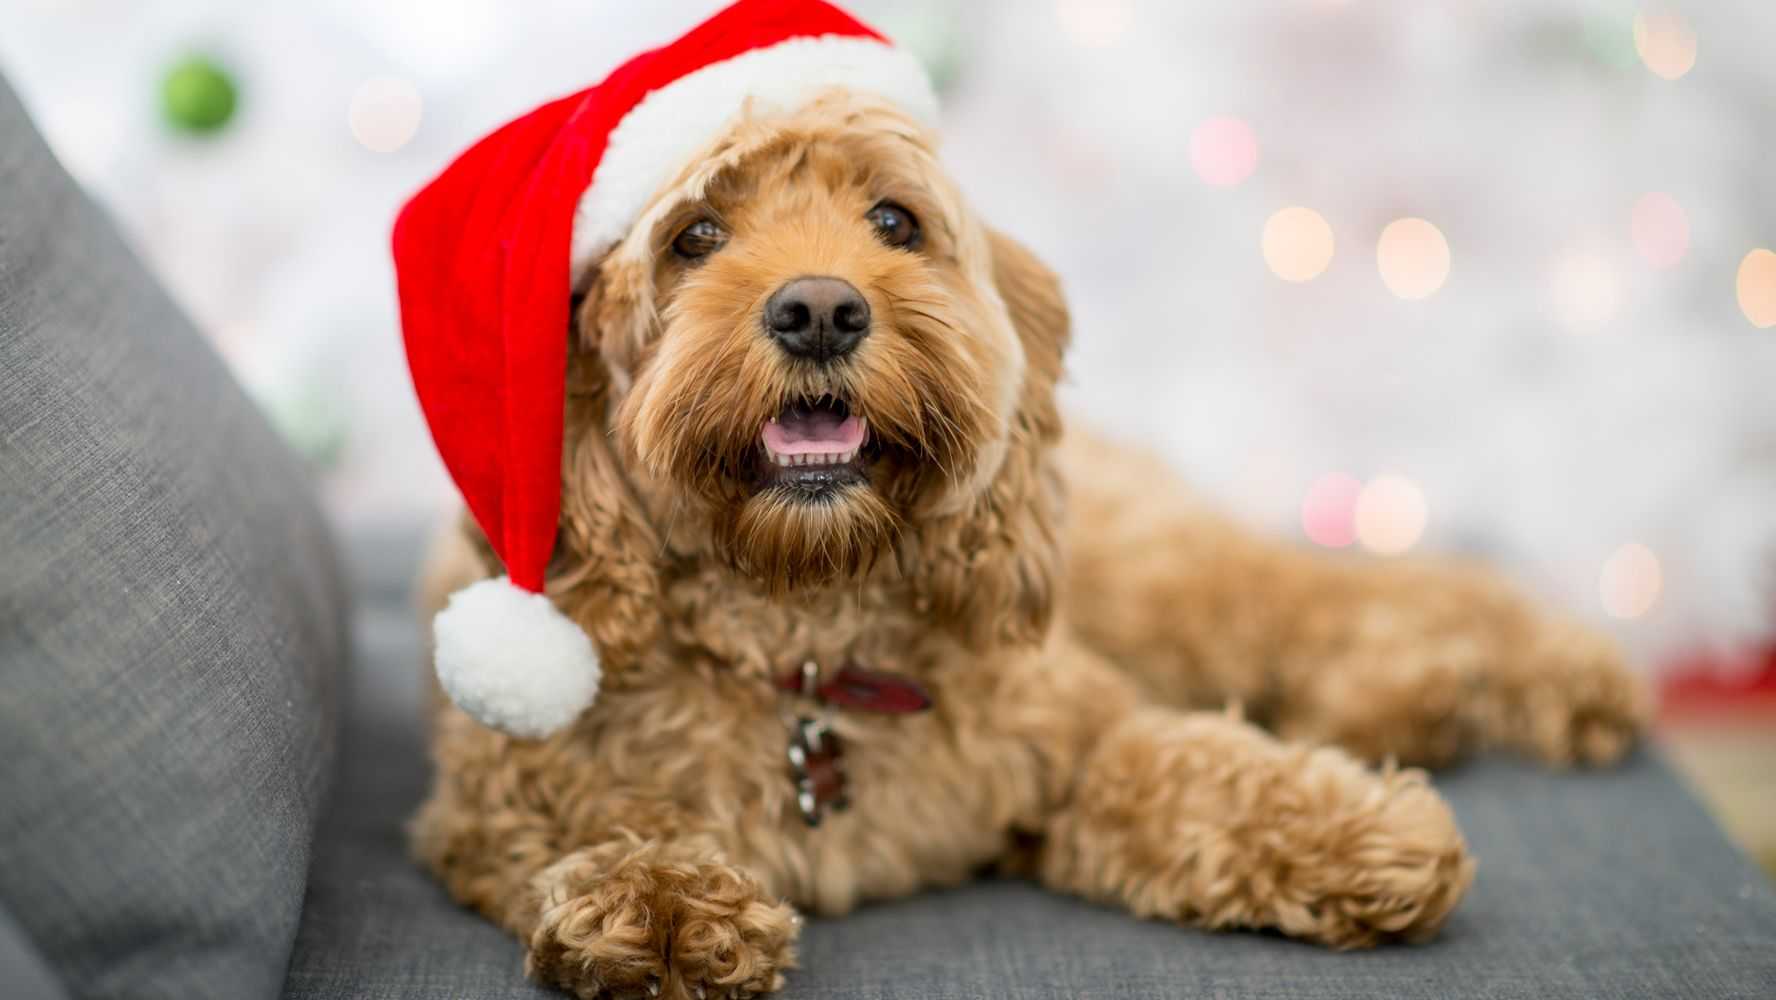 The Christmas Dogs Of Instagram Are Pawsitively Adorable